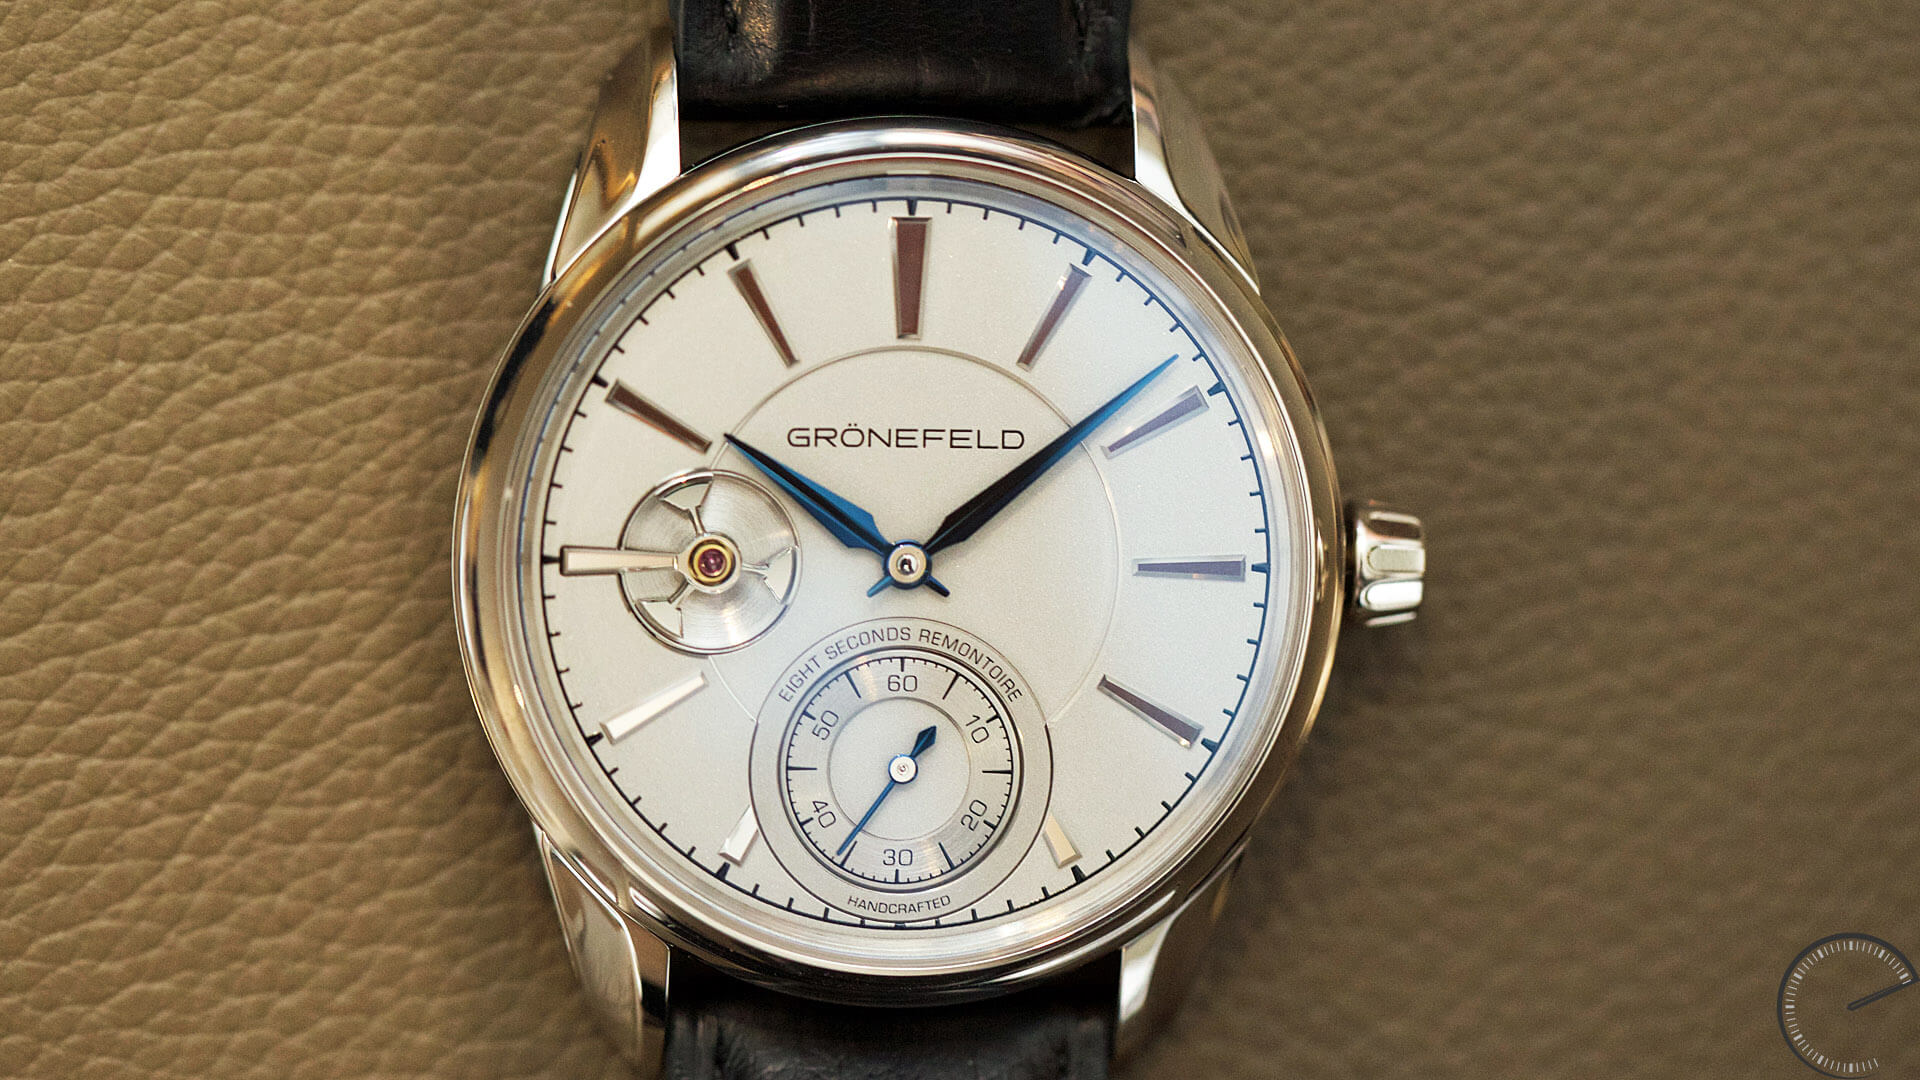 Gronefeld_1941_Remontoire_White_Gold_dial - ESCAPEMENT magazine - reviews of fine watches